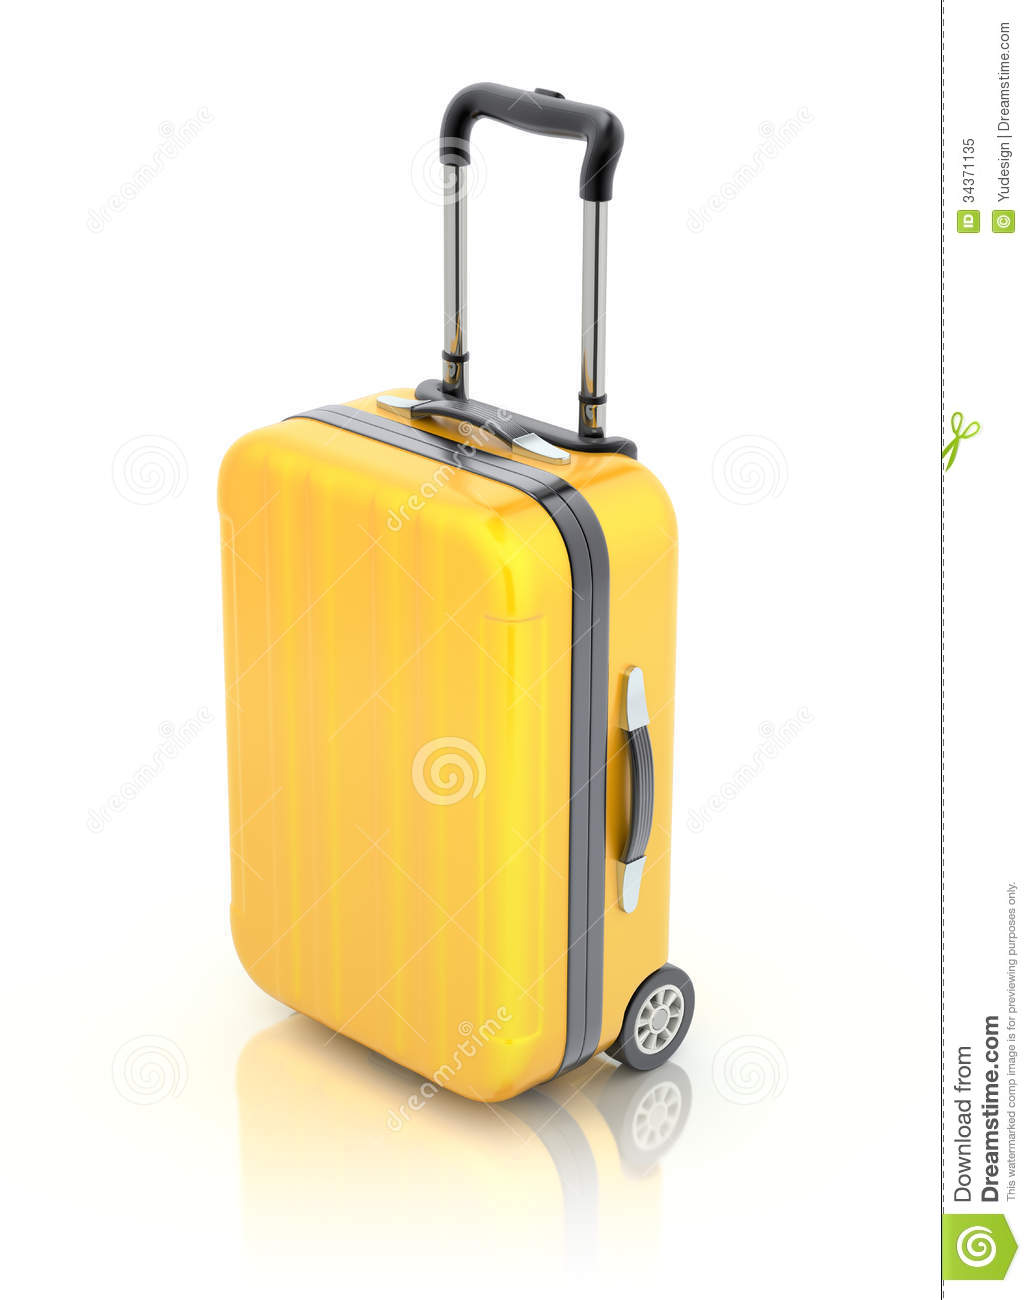 Travel Suitcase Royalty Free Stock Photo - Image: 34371135